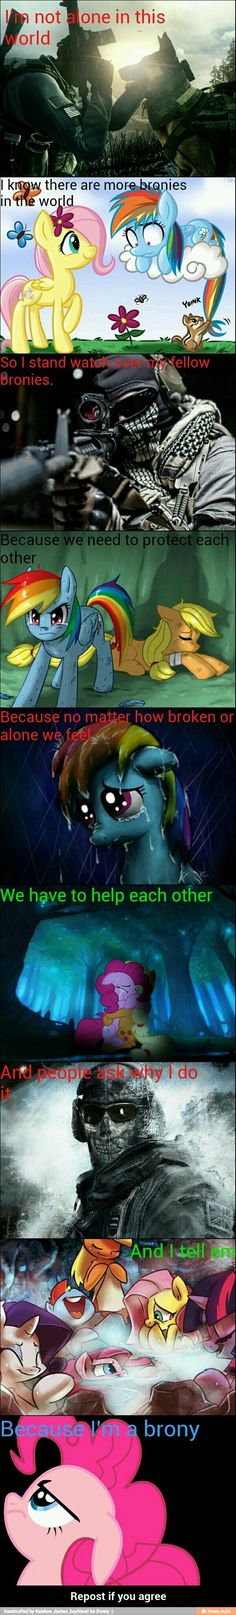 Too all of my Fellow Bronies and Pegasisters. I love you all!